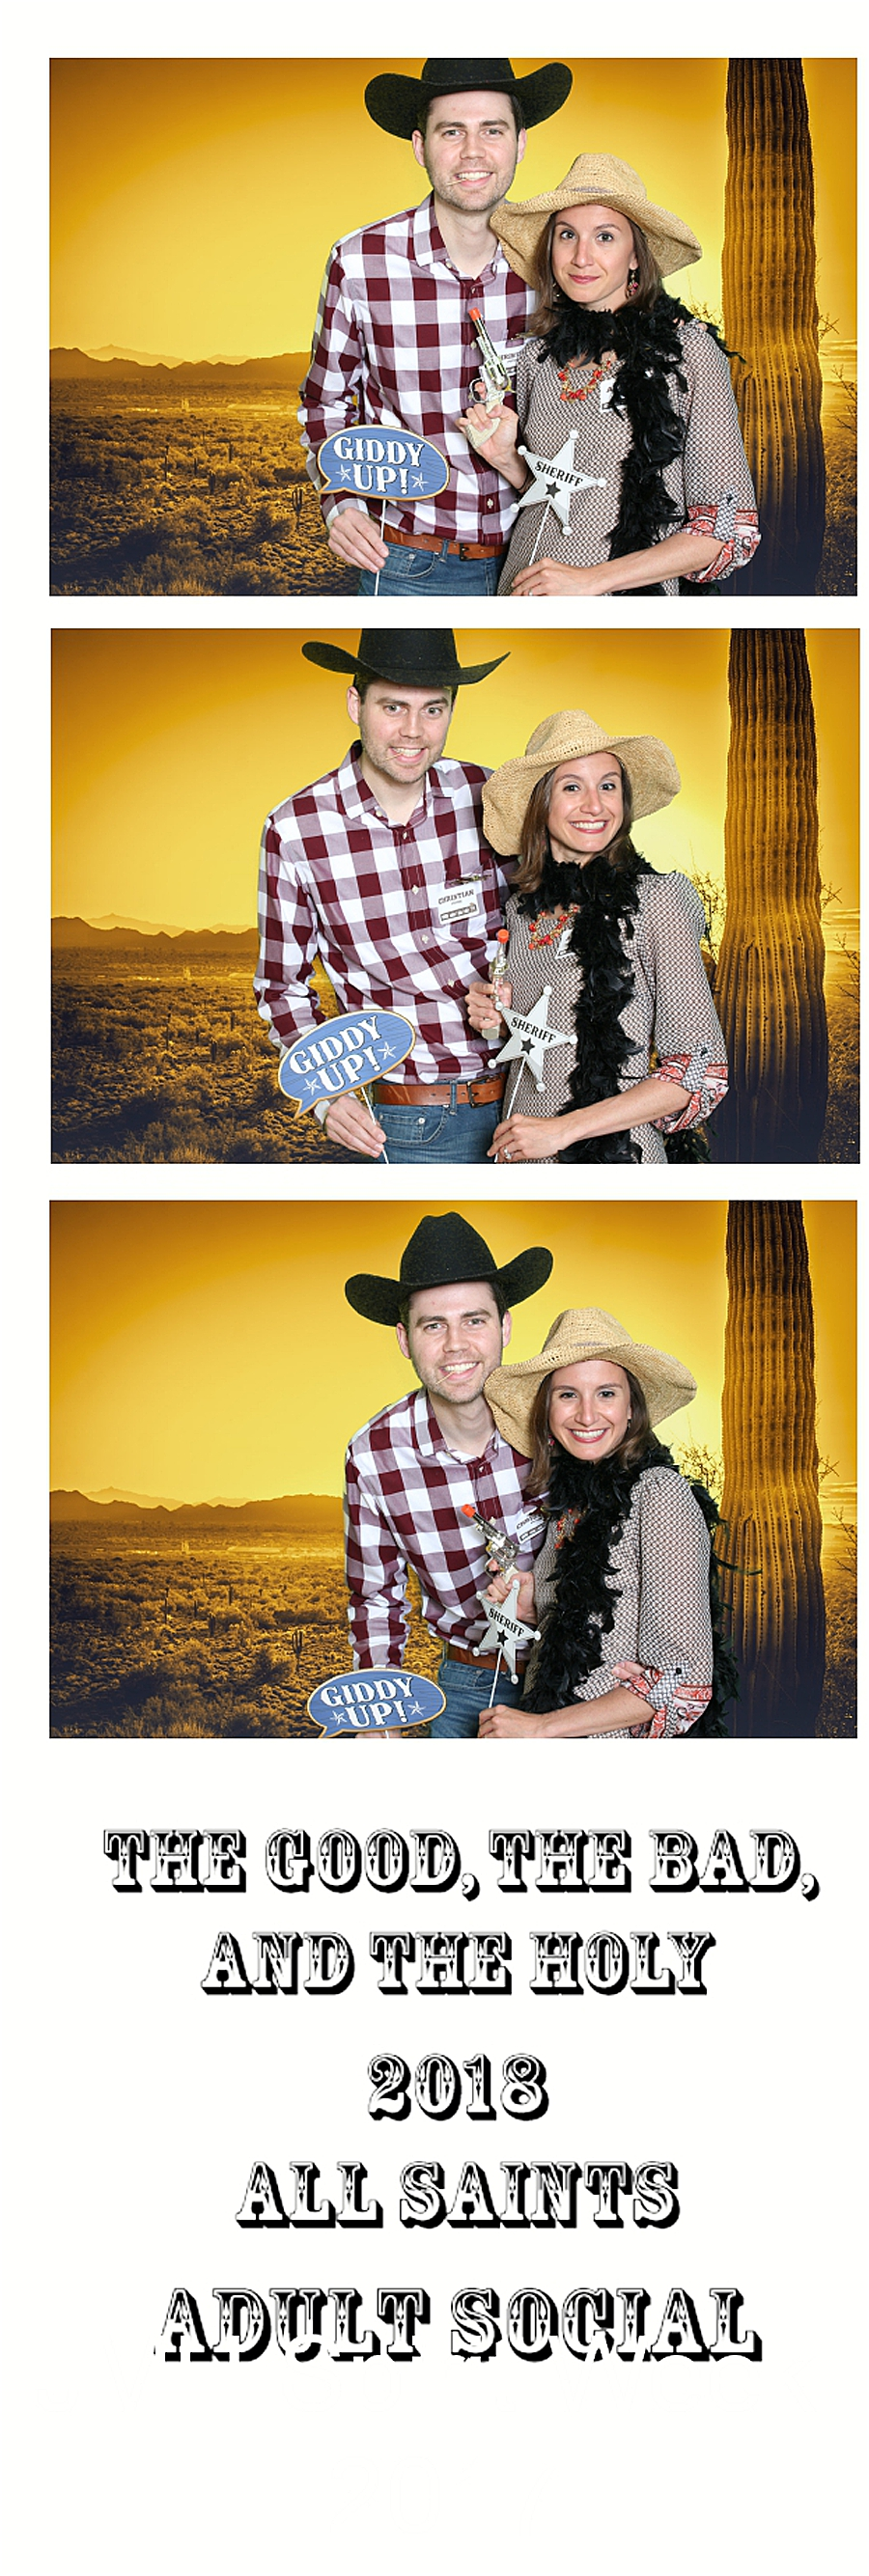 Knoxville Photo Booth_1303.jpg